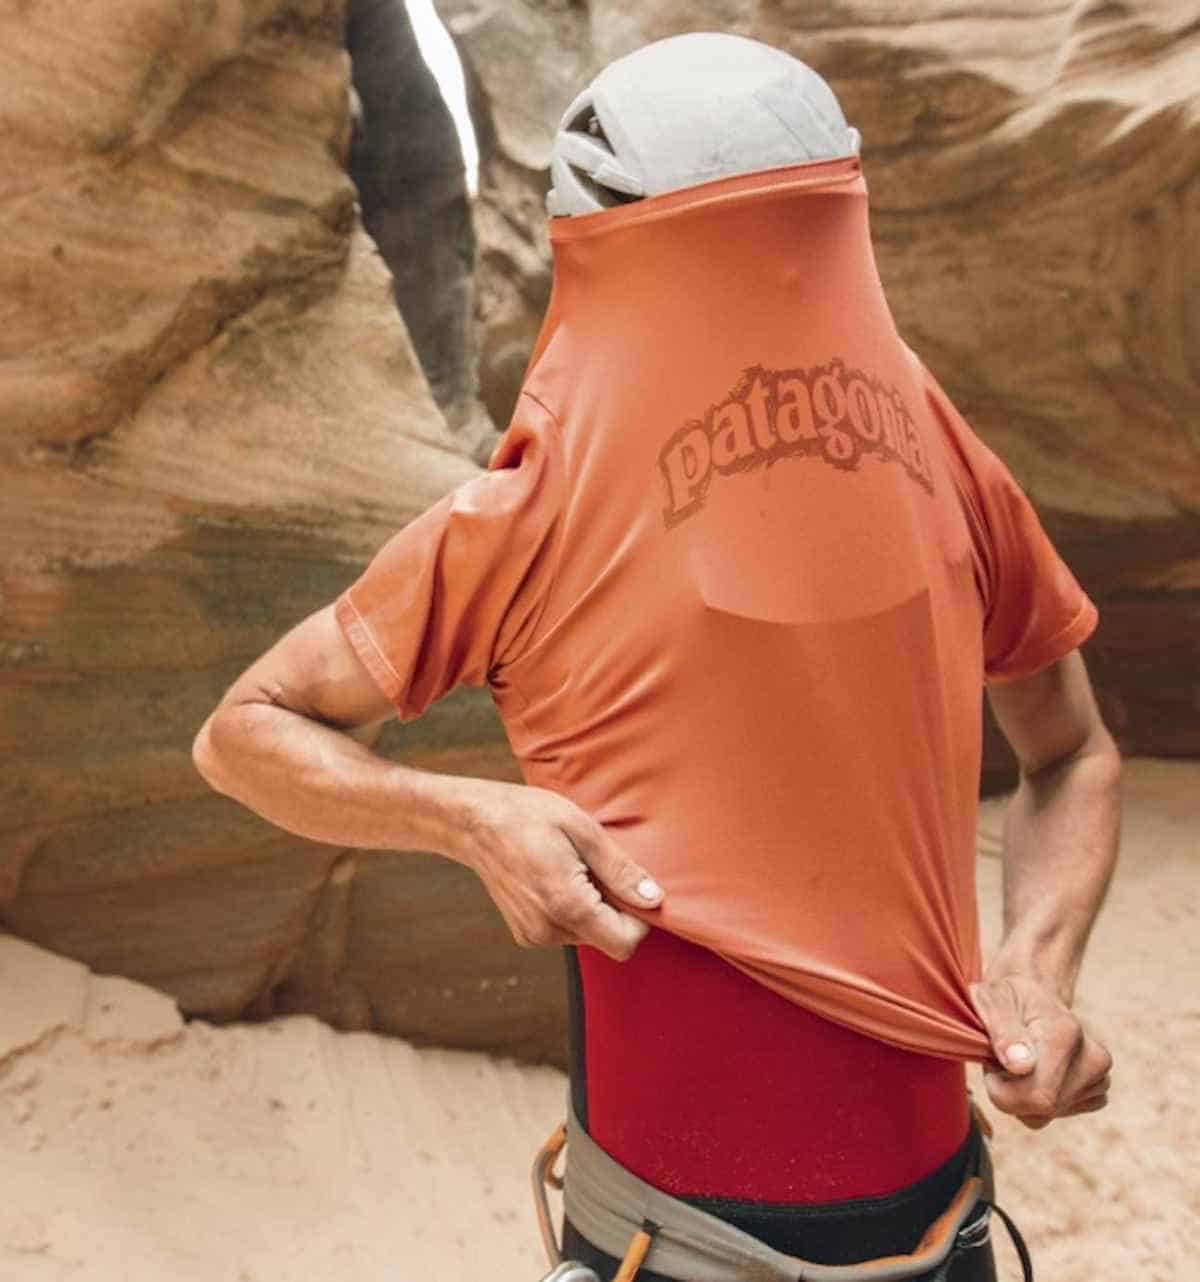 Tee-riffic Sustainable & Eco Friendly T-shirts Image by Patagonia #ecofriendly #sustainablefashion